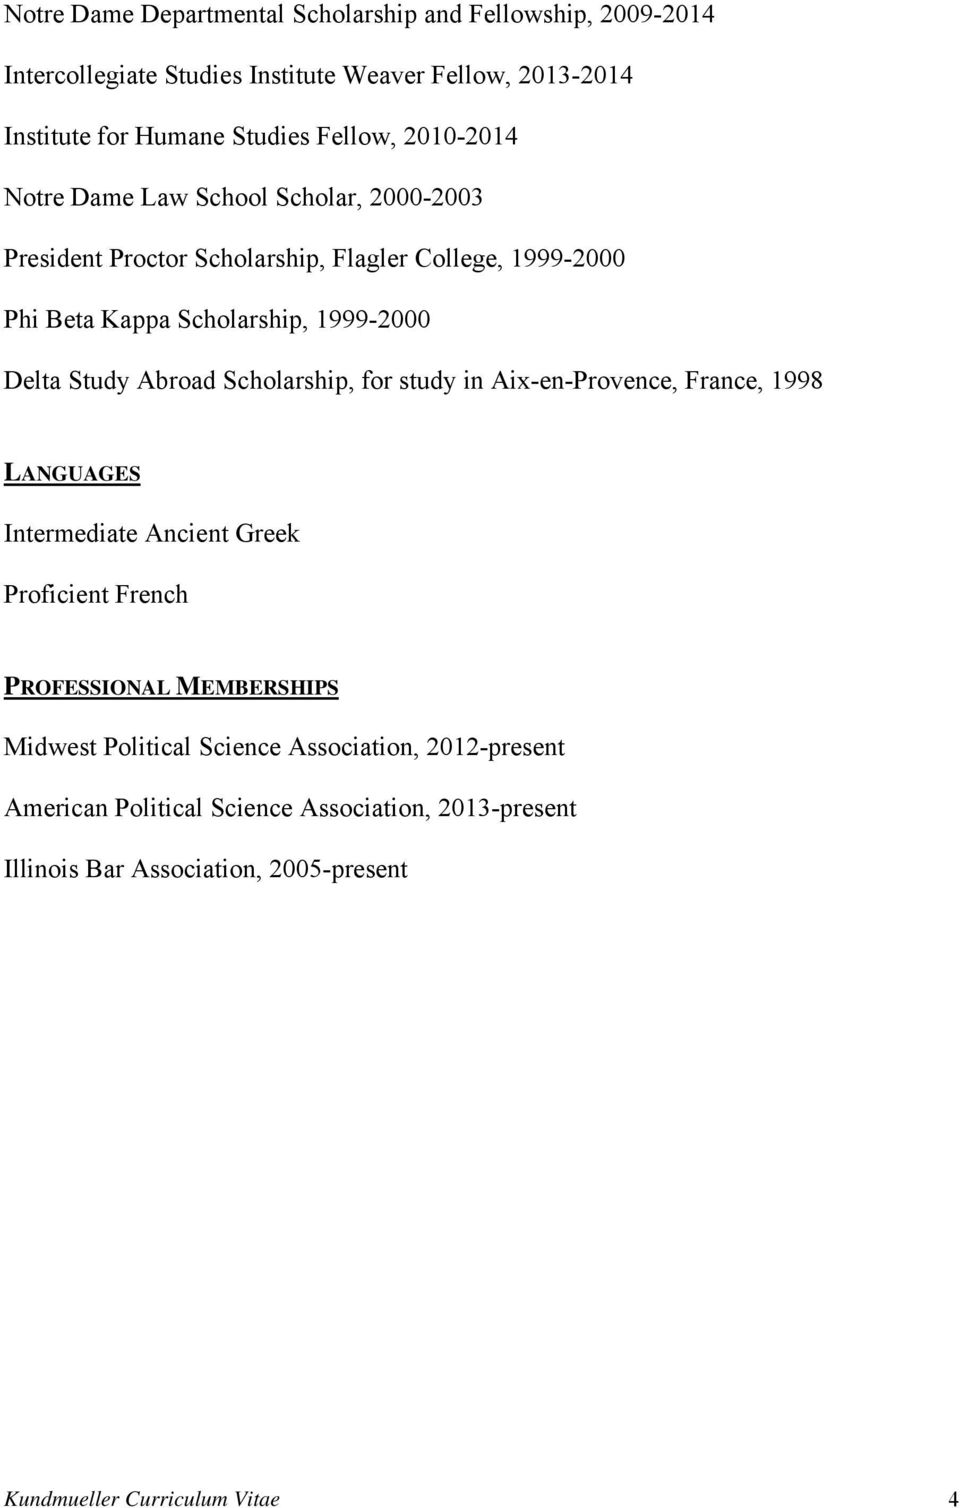 Abroad Scholarship, for study in Aix-en-Provence, France, 1998 LANGUAGES Intermediate Ancient Greek Proficient French PROFESSIONAL MEMBERSHIPS Midwest